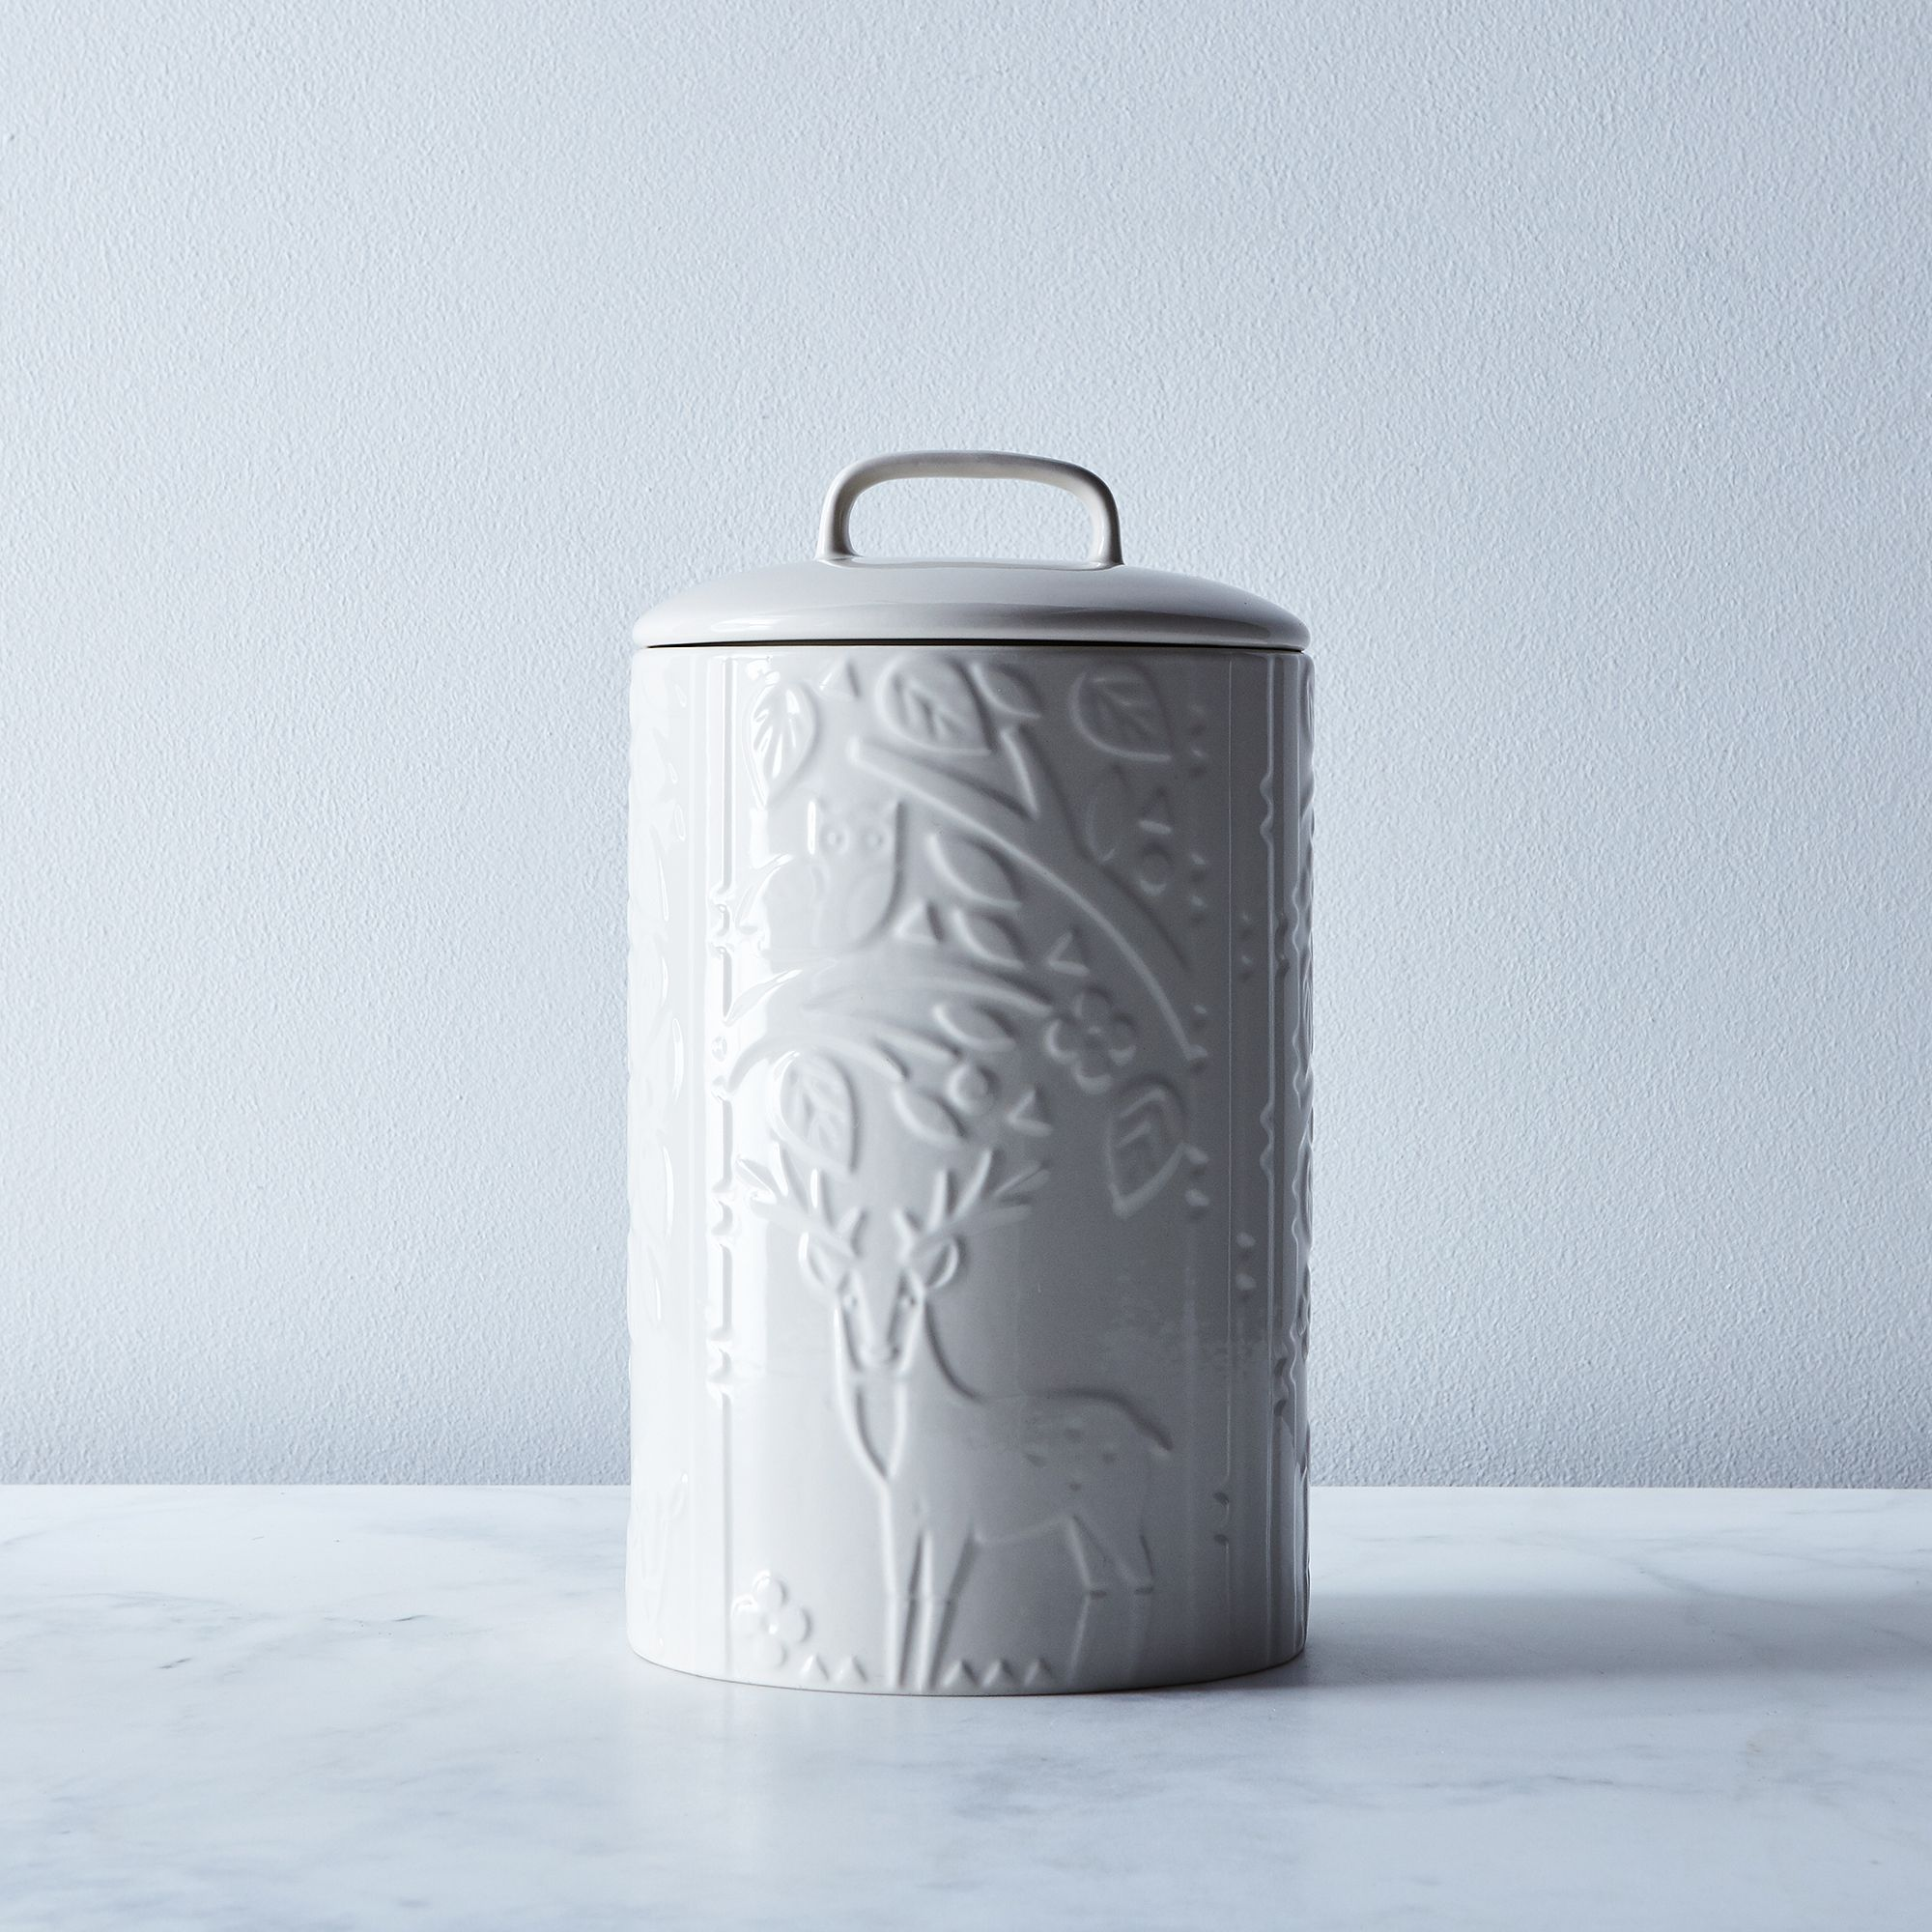 6b60051f 421f 4434 b196 41be97b786d3  2017 0728 typhoon homewares mason cash forest kitchen canisters medium silo rocky luten 004